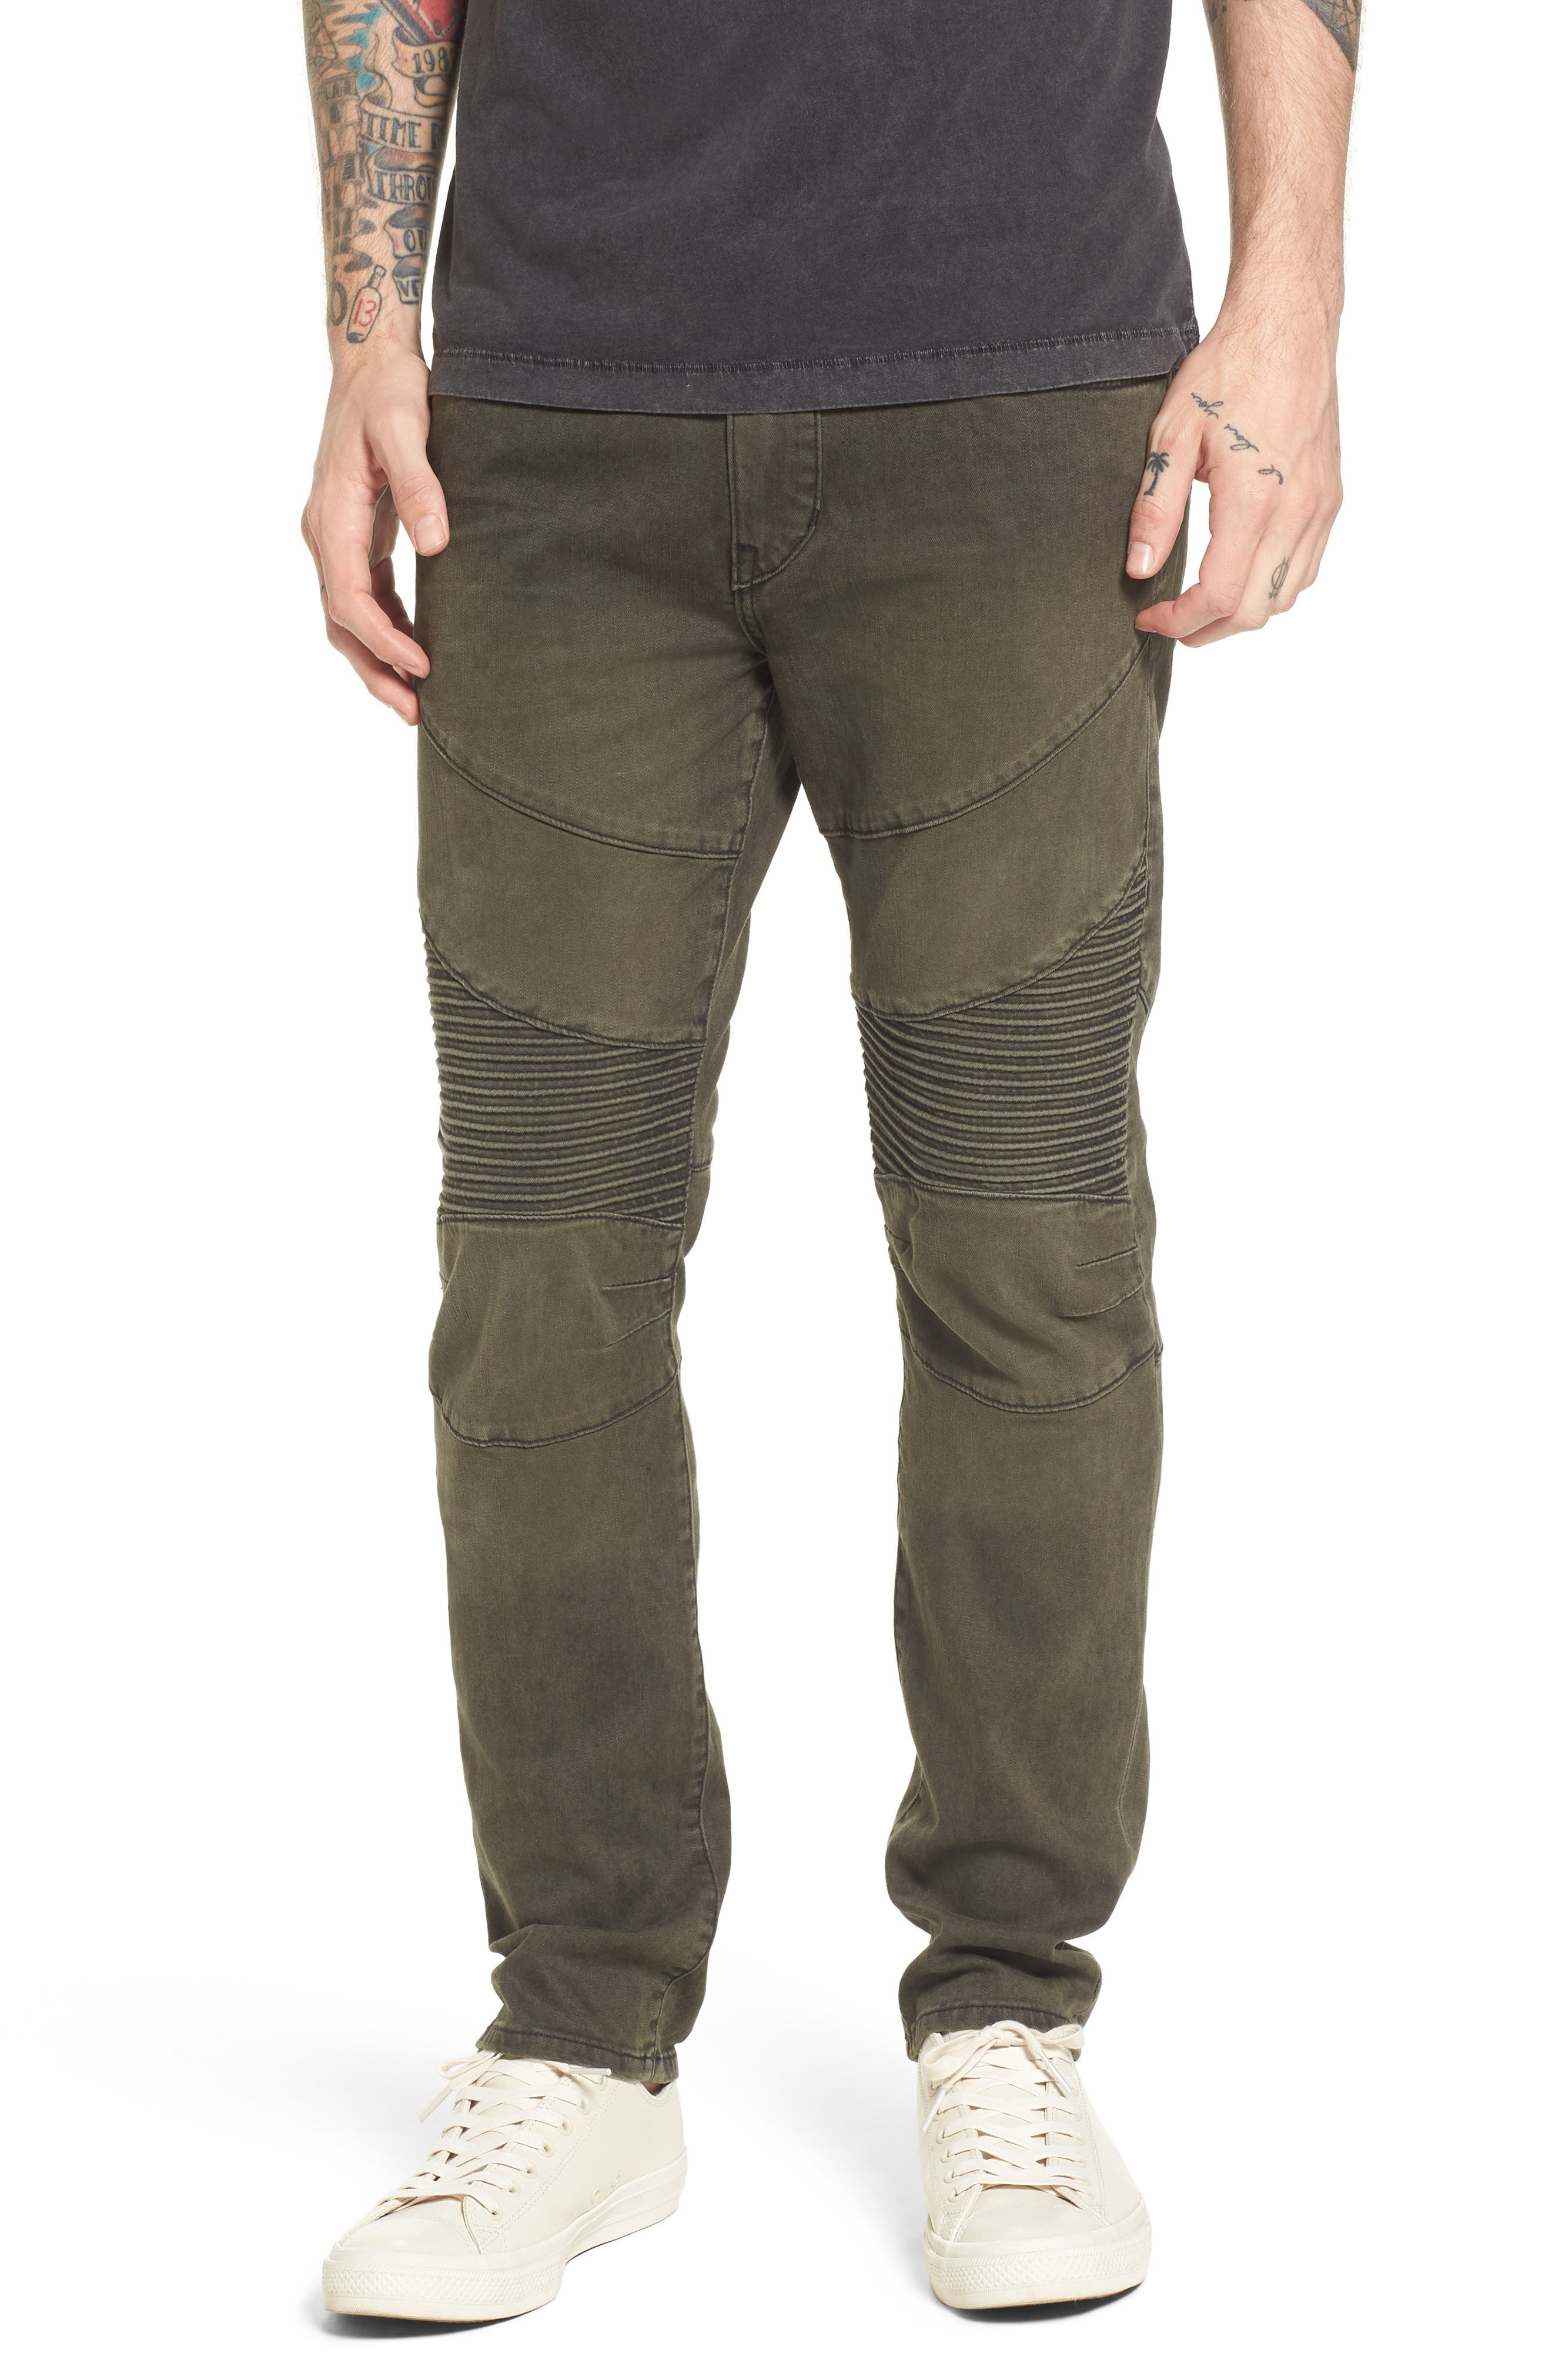 True Religion Brand Jeans Rocco Skinny Fit Jeans (Olive Coated)